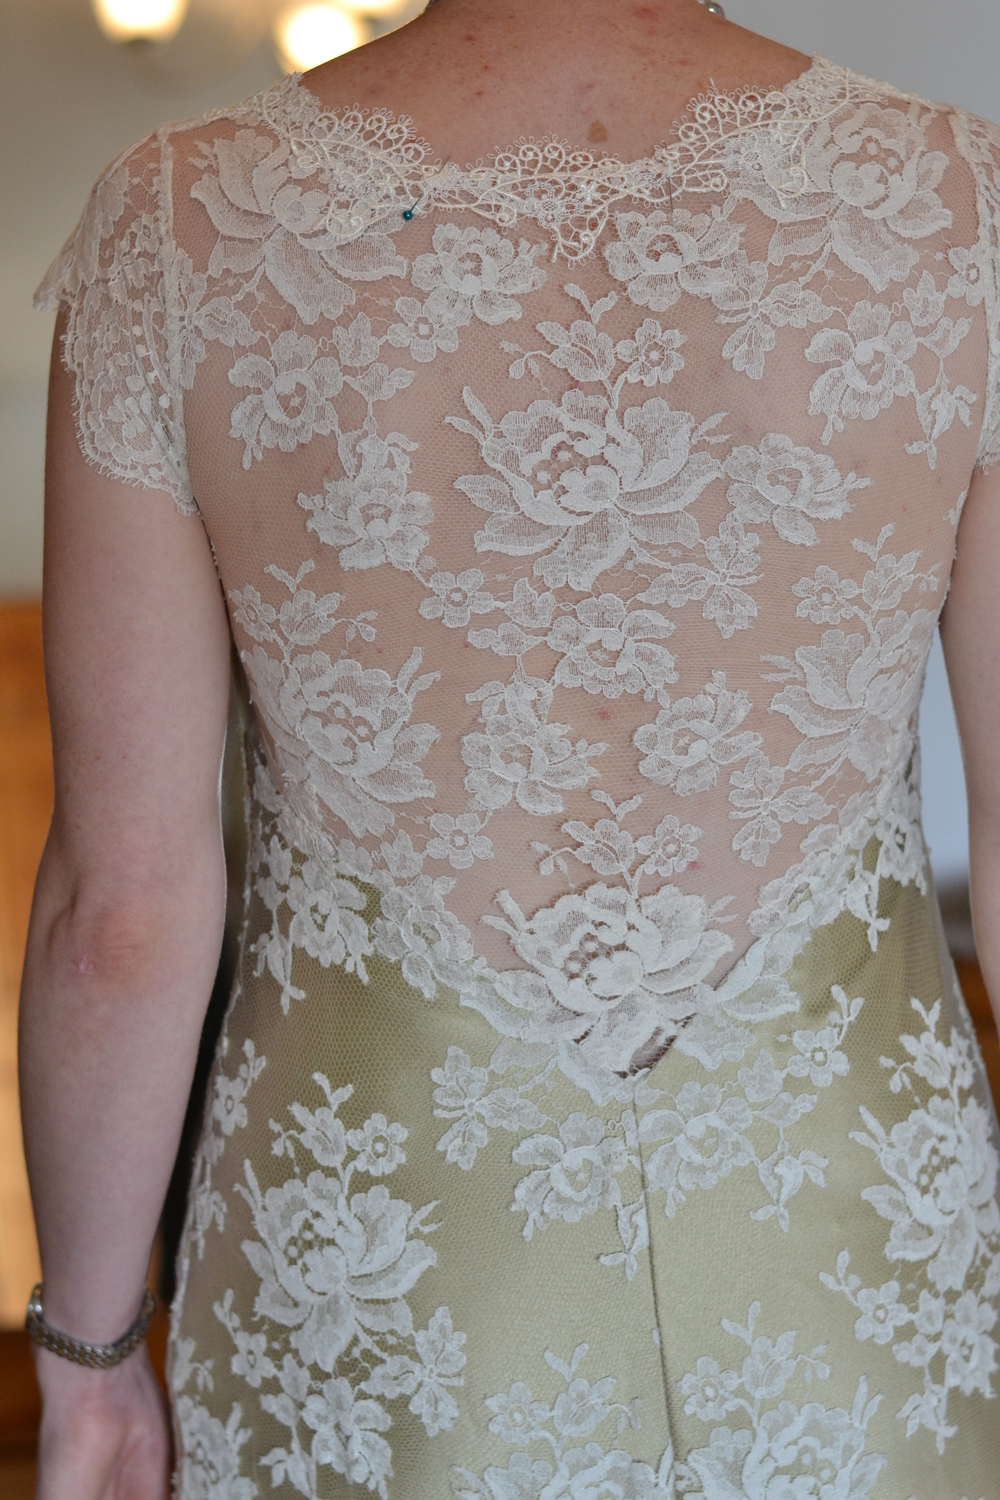 Delicate all lace dress back with rose motifs and guipere lace edge